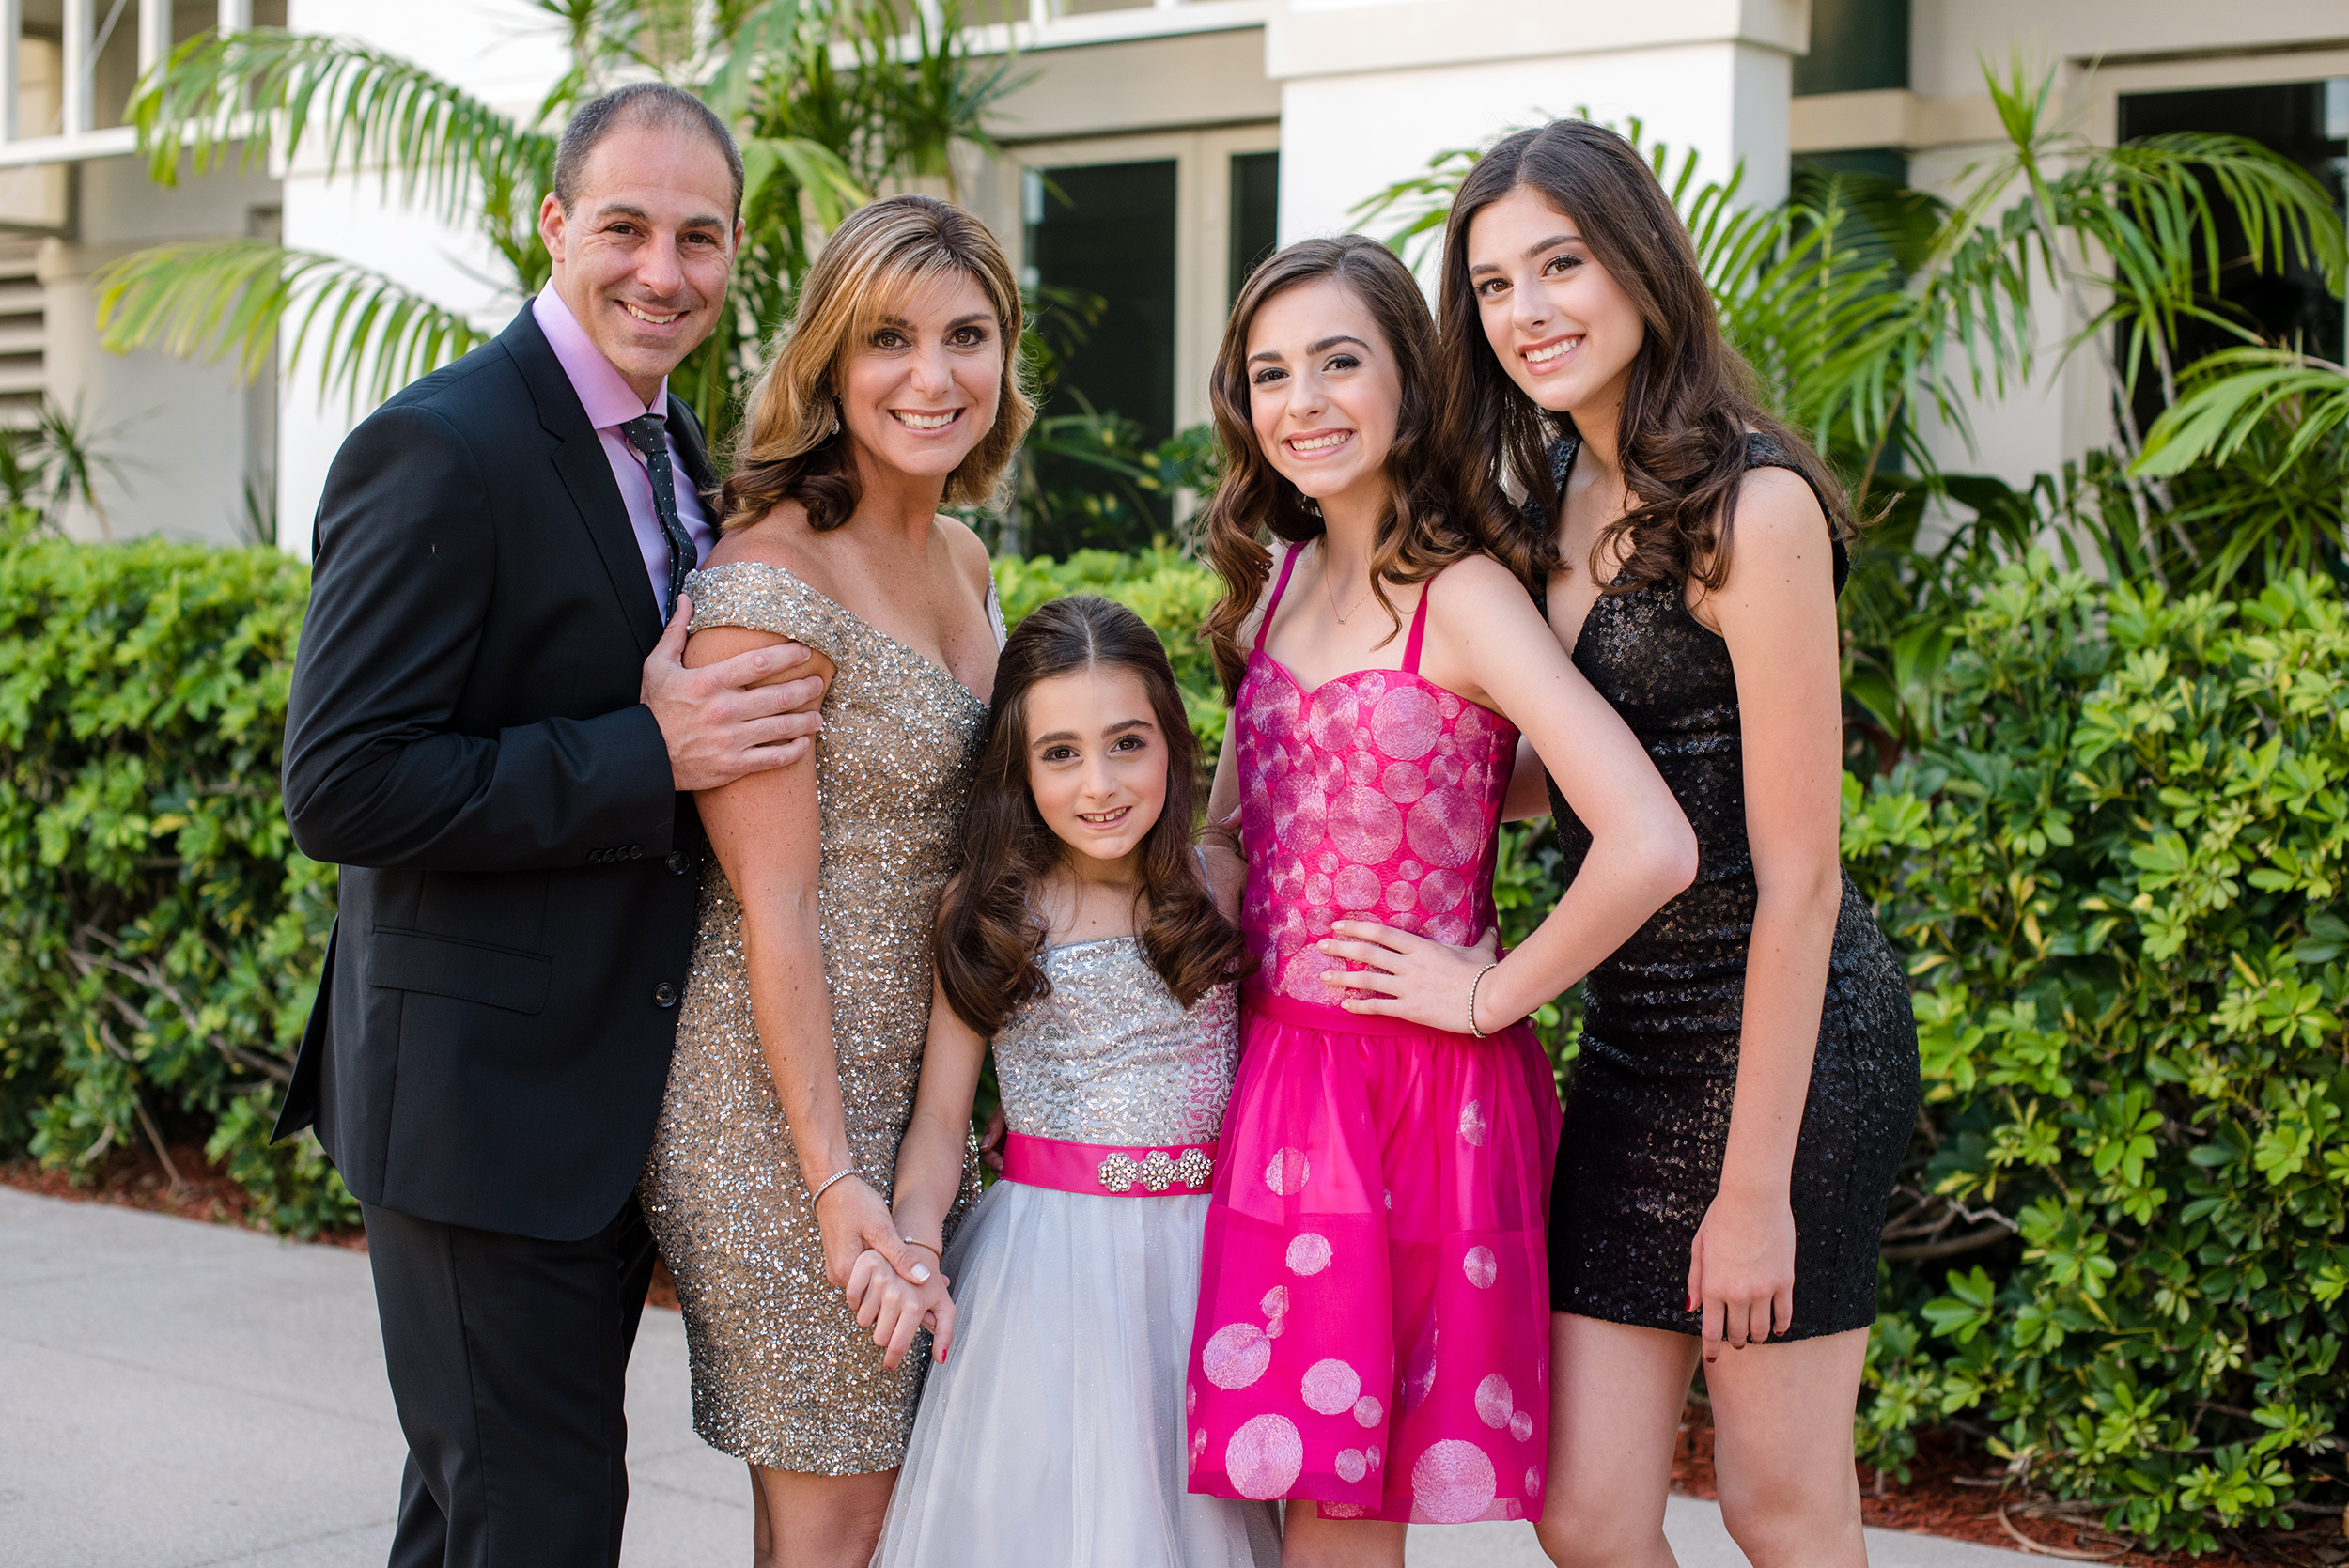 mitzvah-event-photography-south-florida-alison-frank-photography_04.jpg